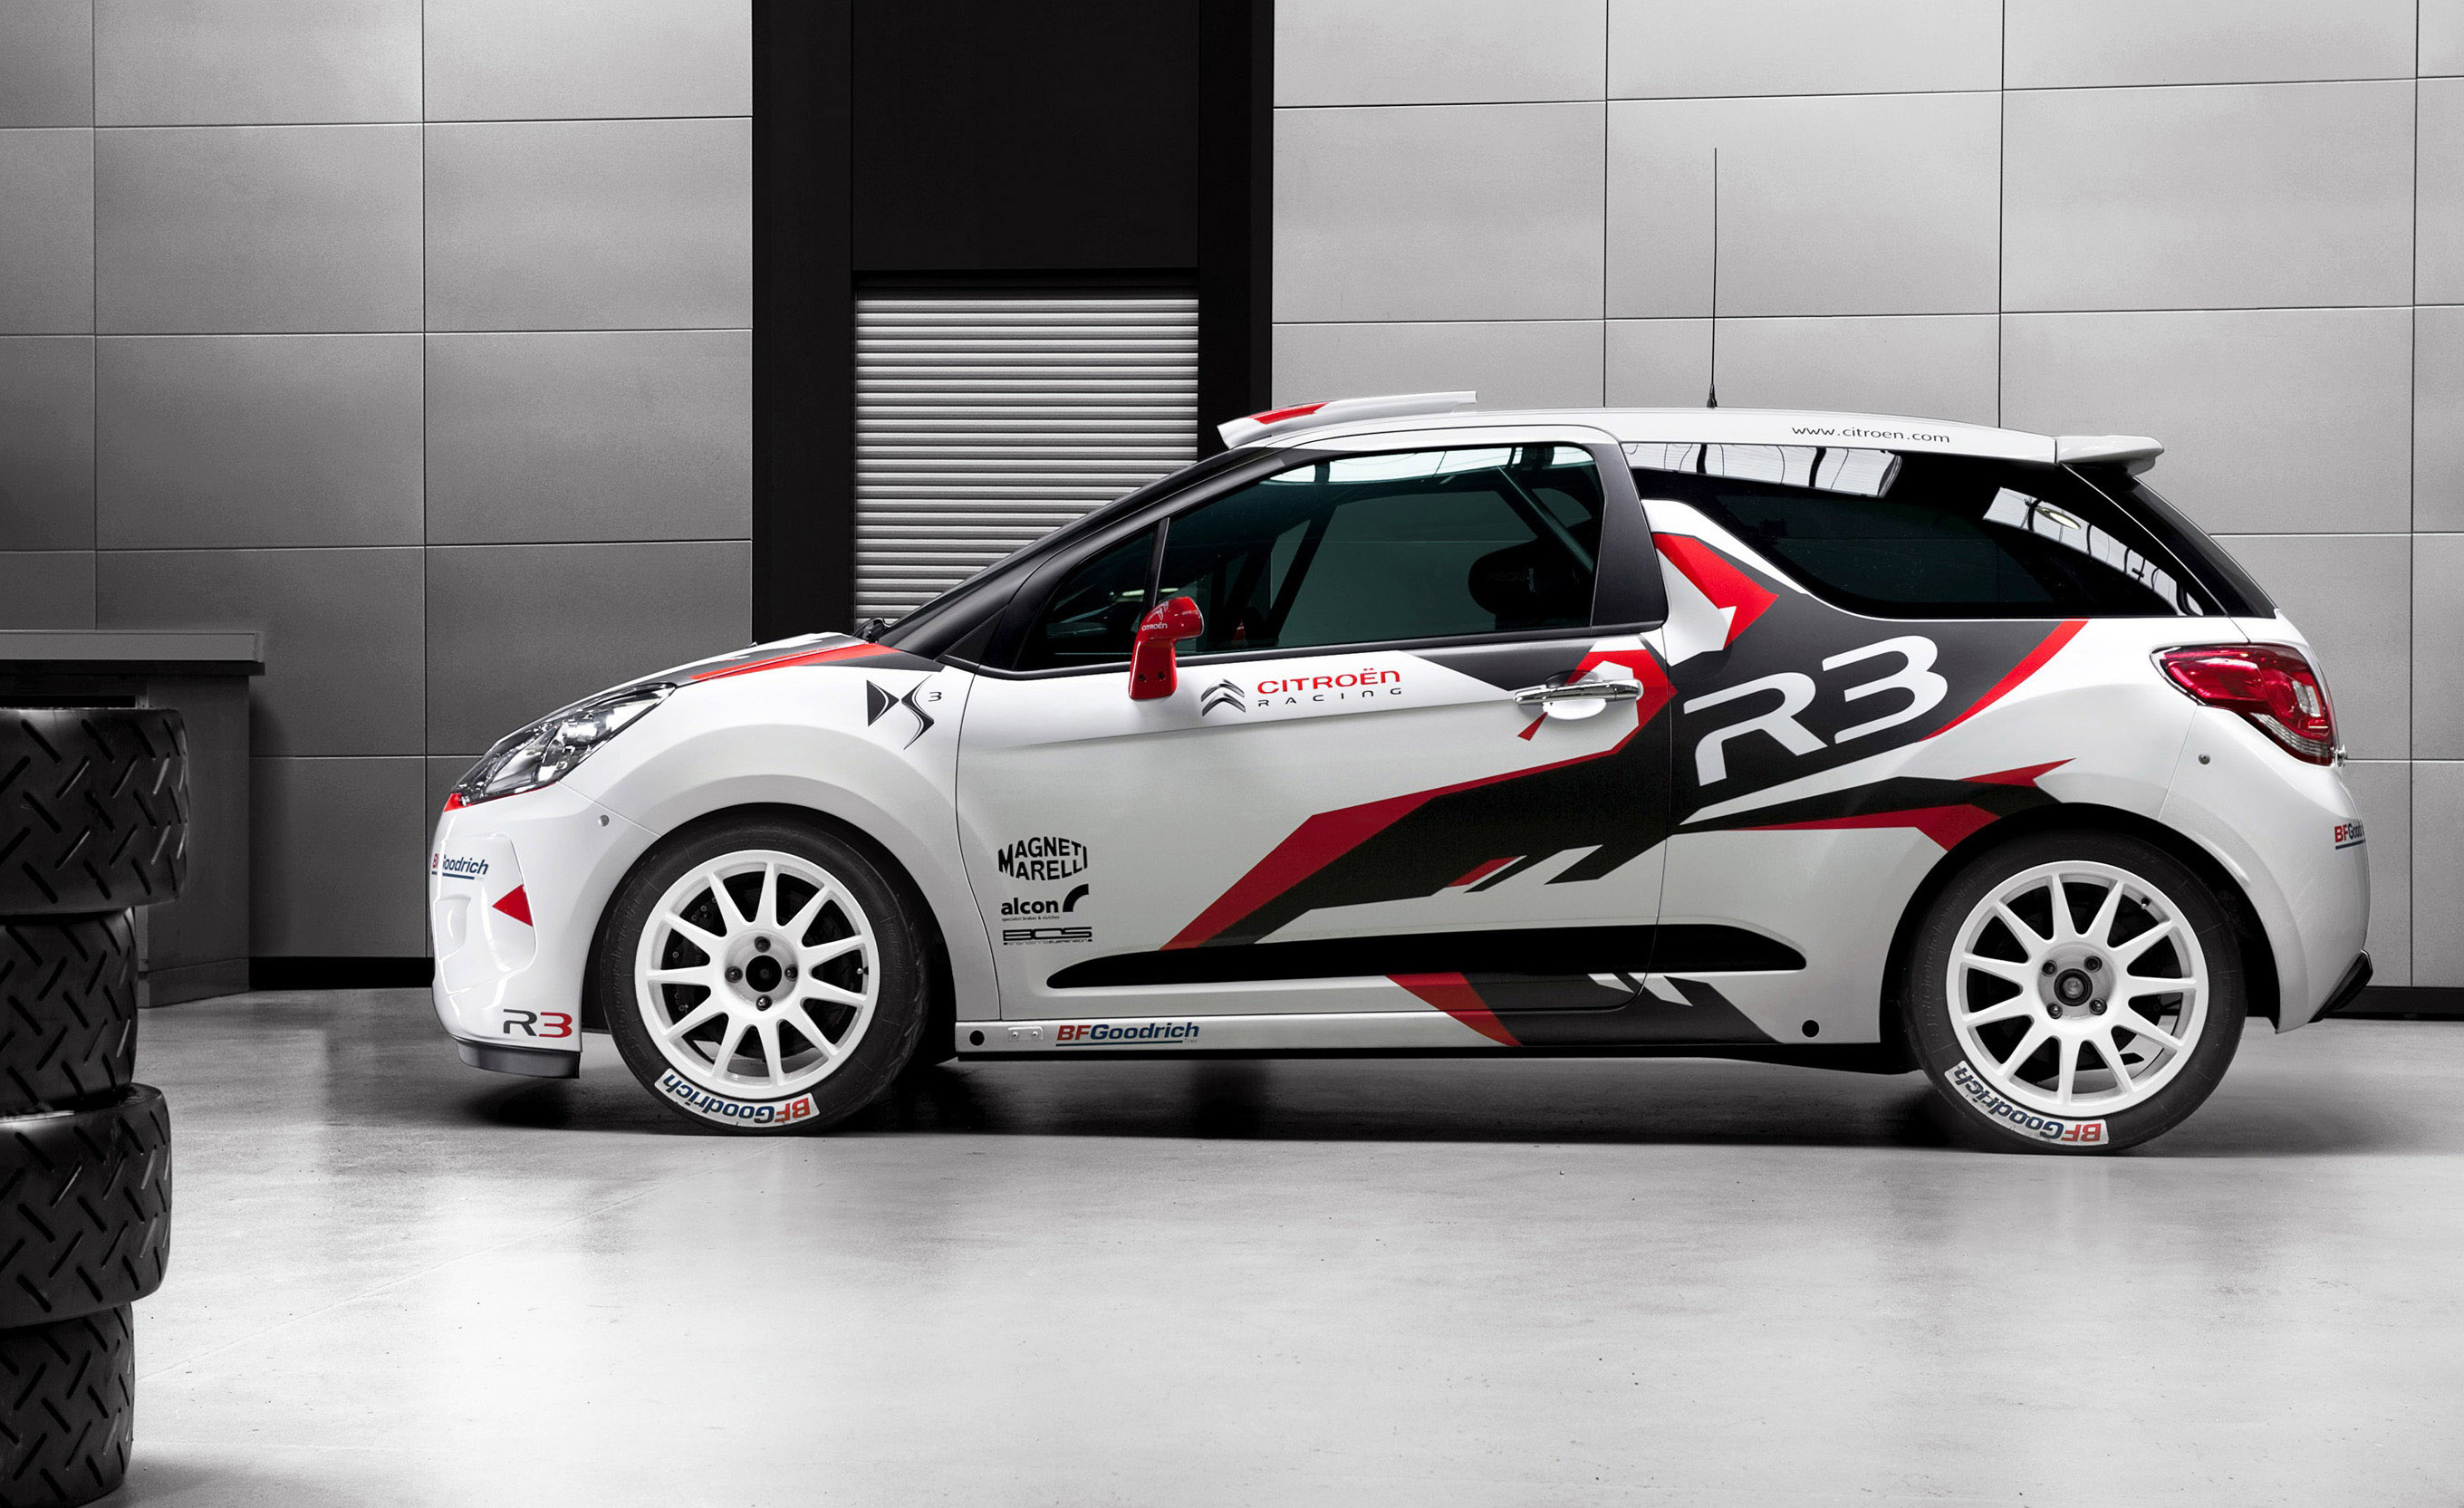 Citroen ds3 r3 will become the new leader in rallying 2011 citroen ds3 r3 vanachro Images